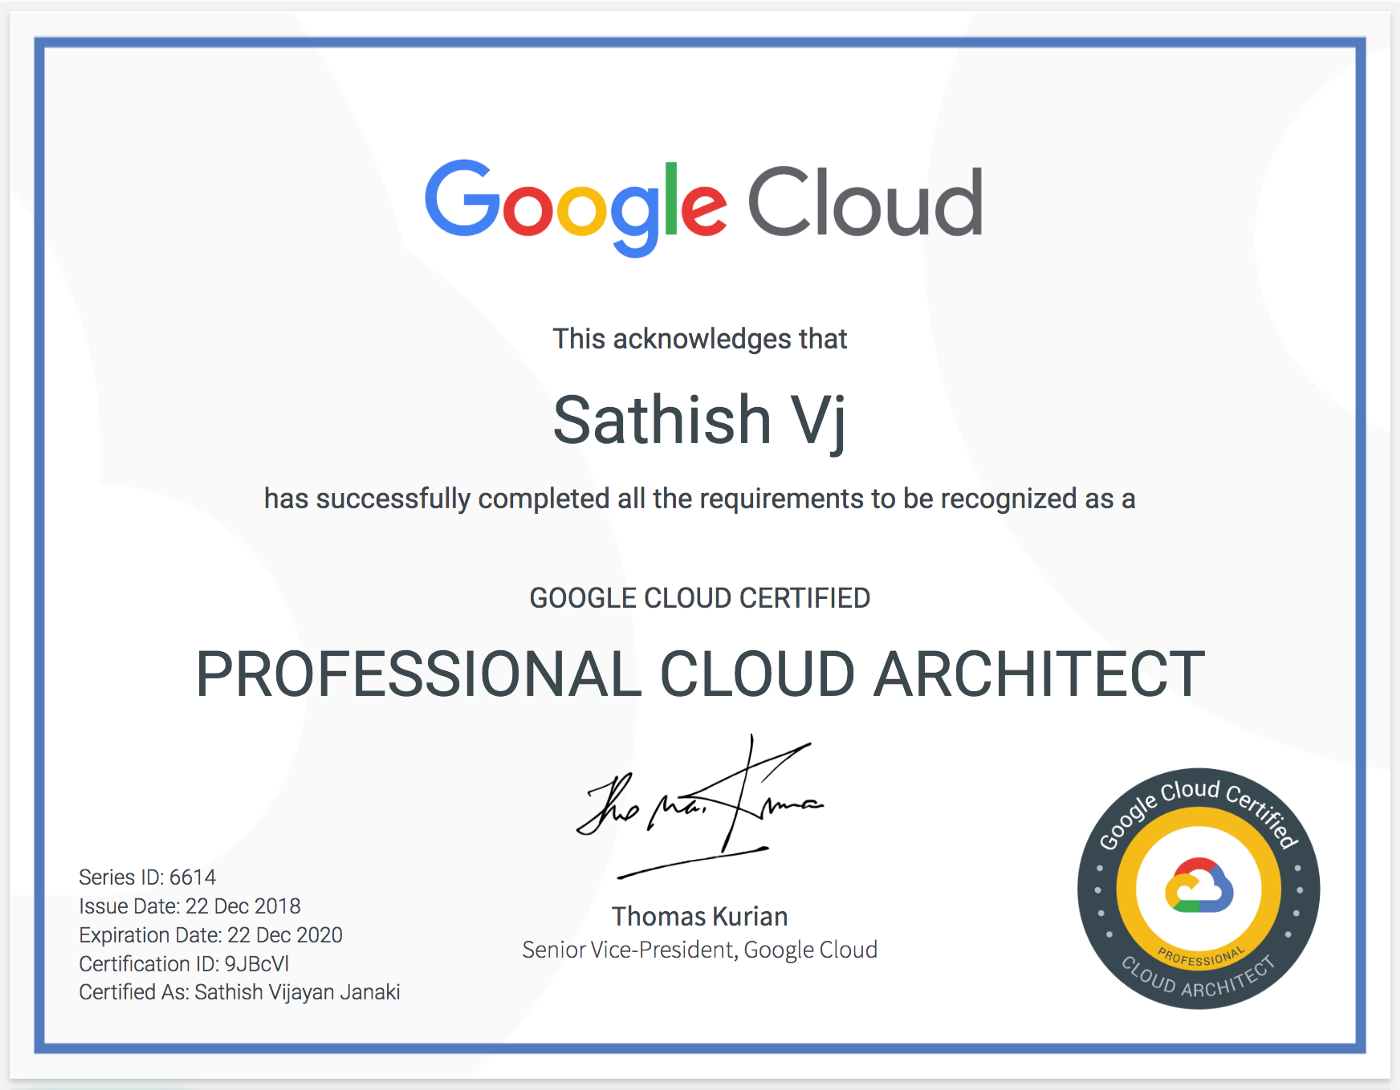 Notes from my Google Cloud Professional Cloud Architect Exam